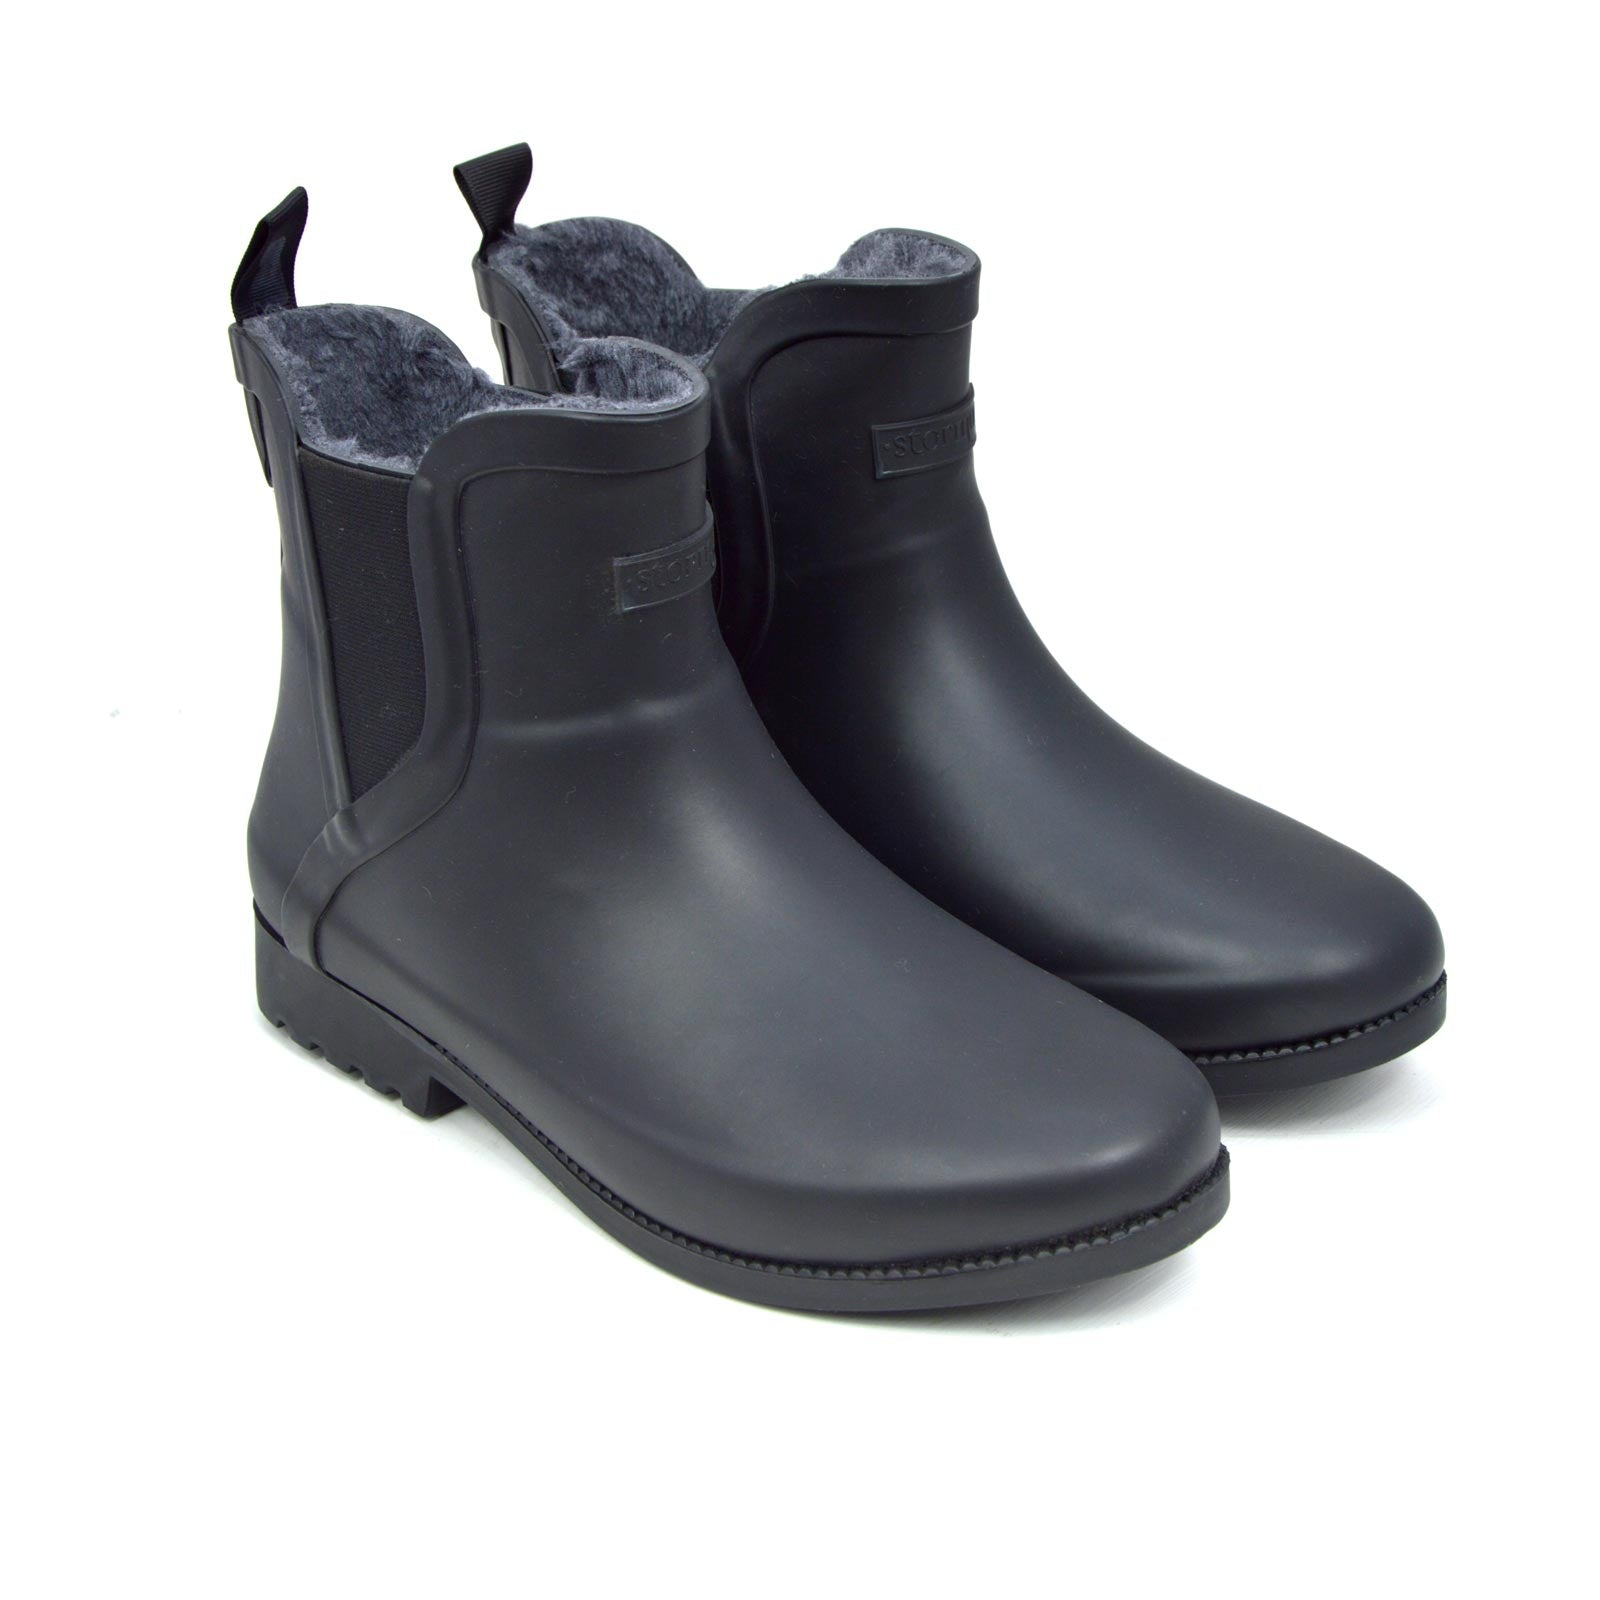 Original Fleeced II Black Ankle Gumboots